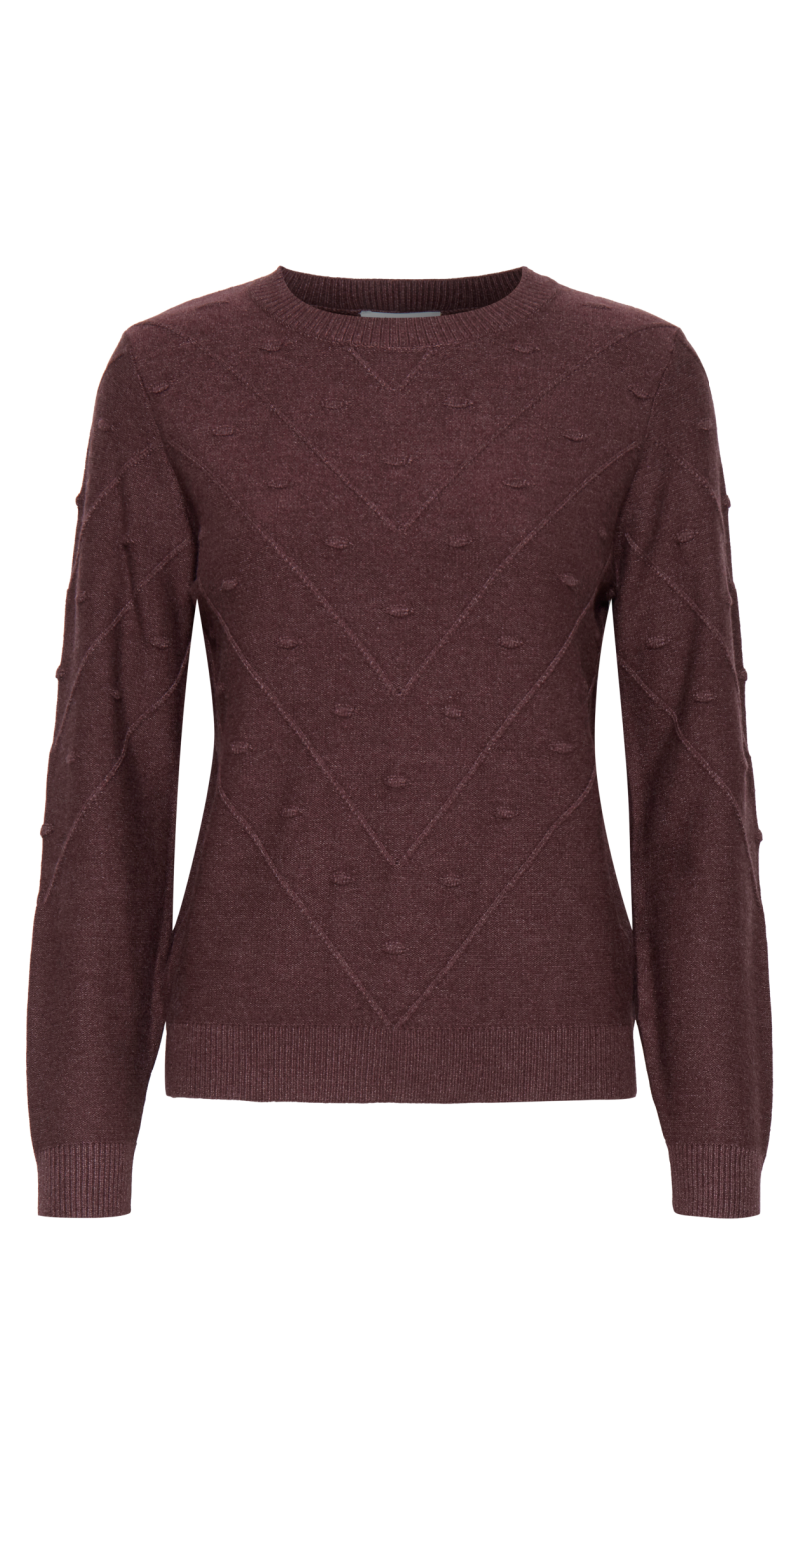 Bordeaux strik med bomber